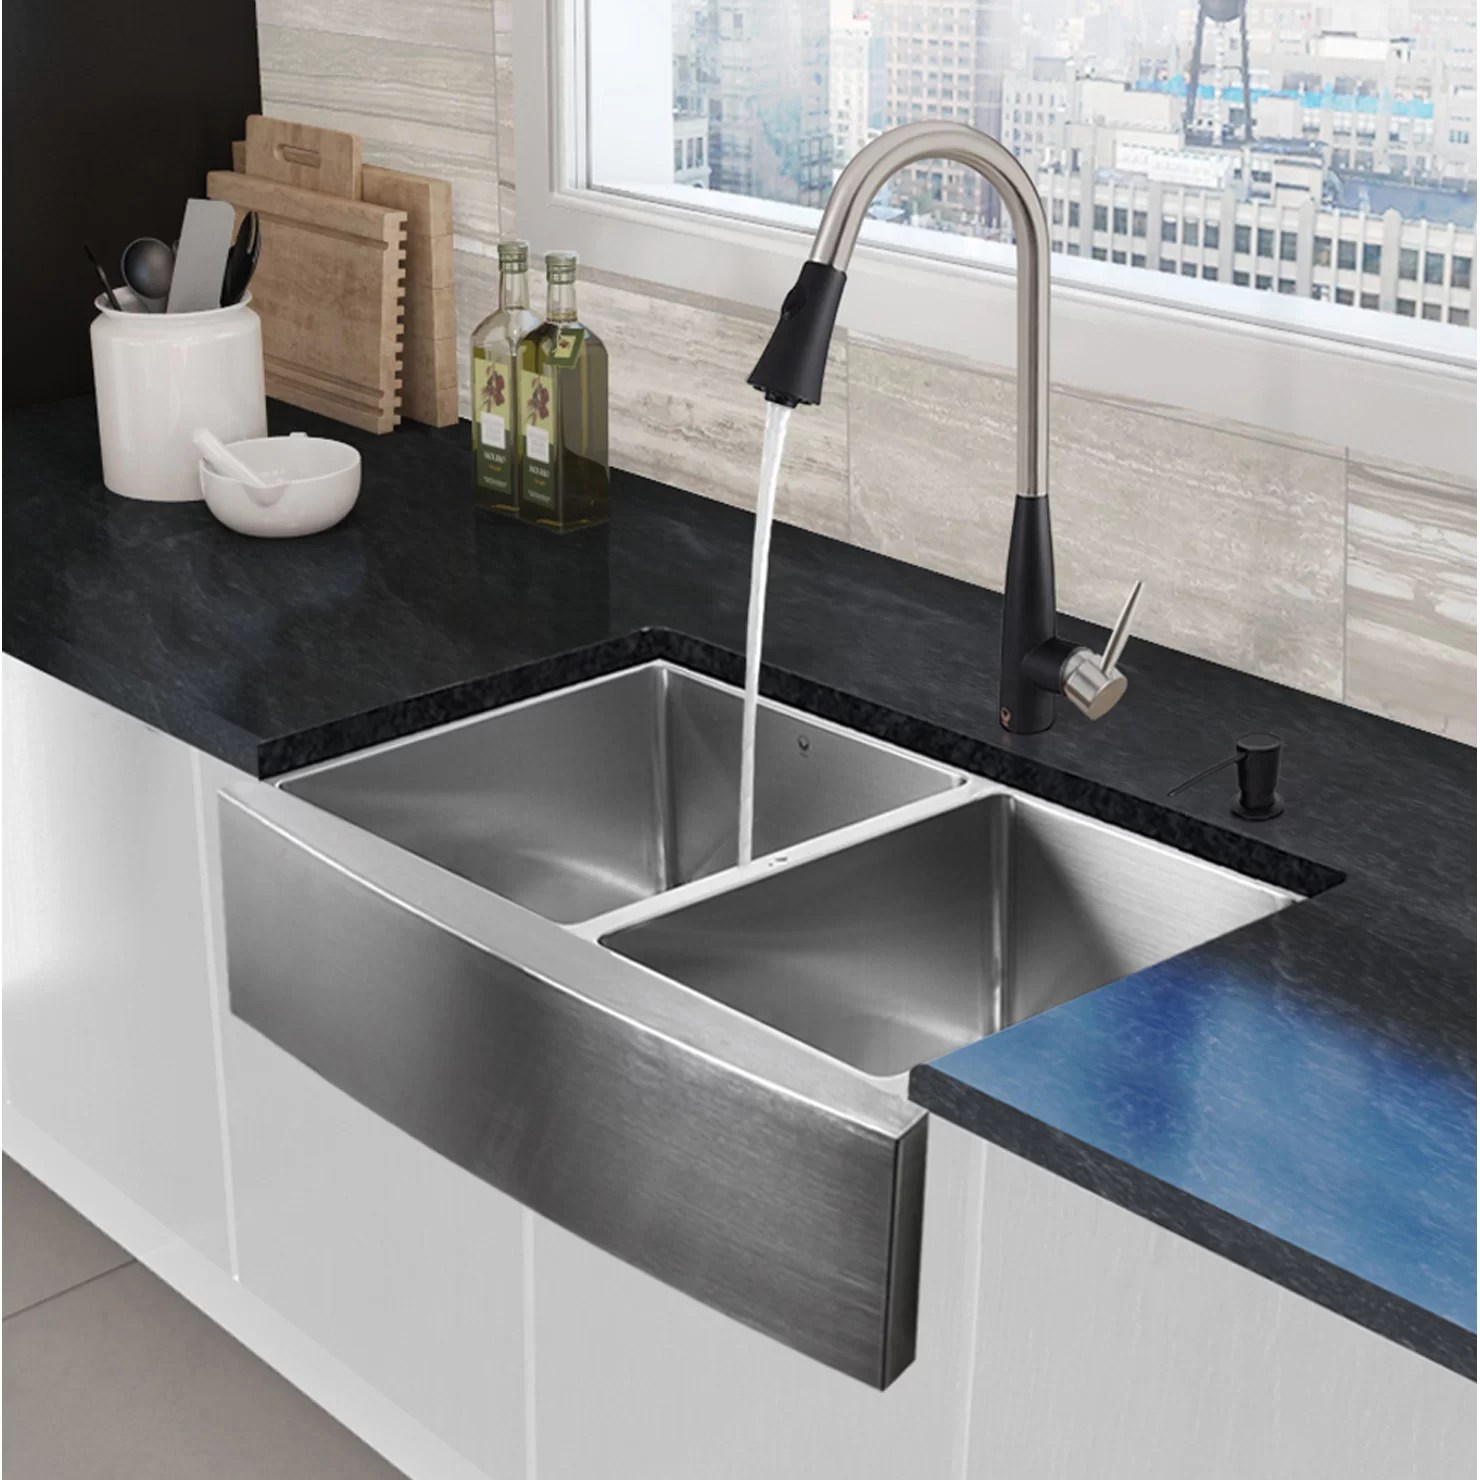 stainless steel farmhouse kitchen sink cabinet granite top vigo 33 quot x 22 25 apron 60 40 double bowl 16